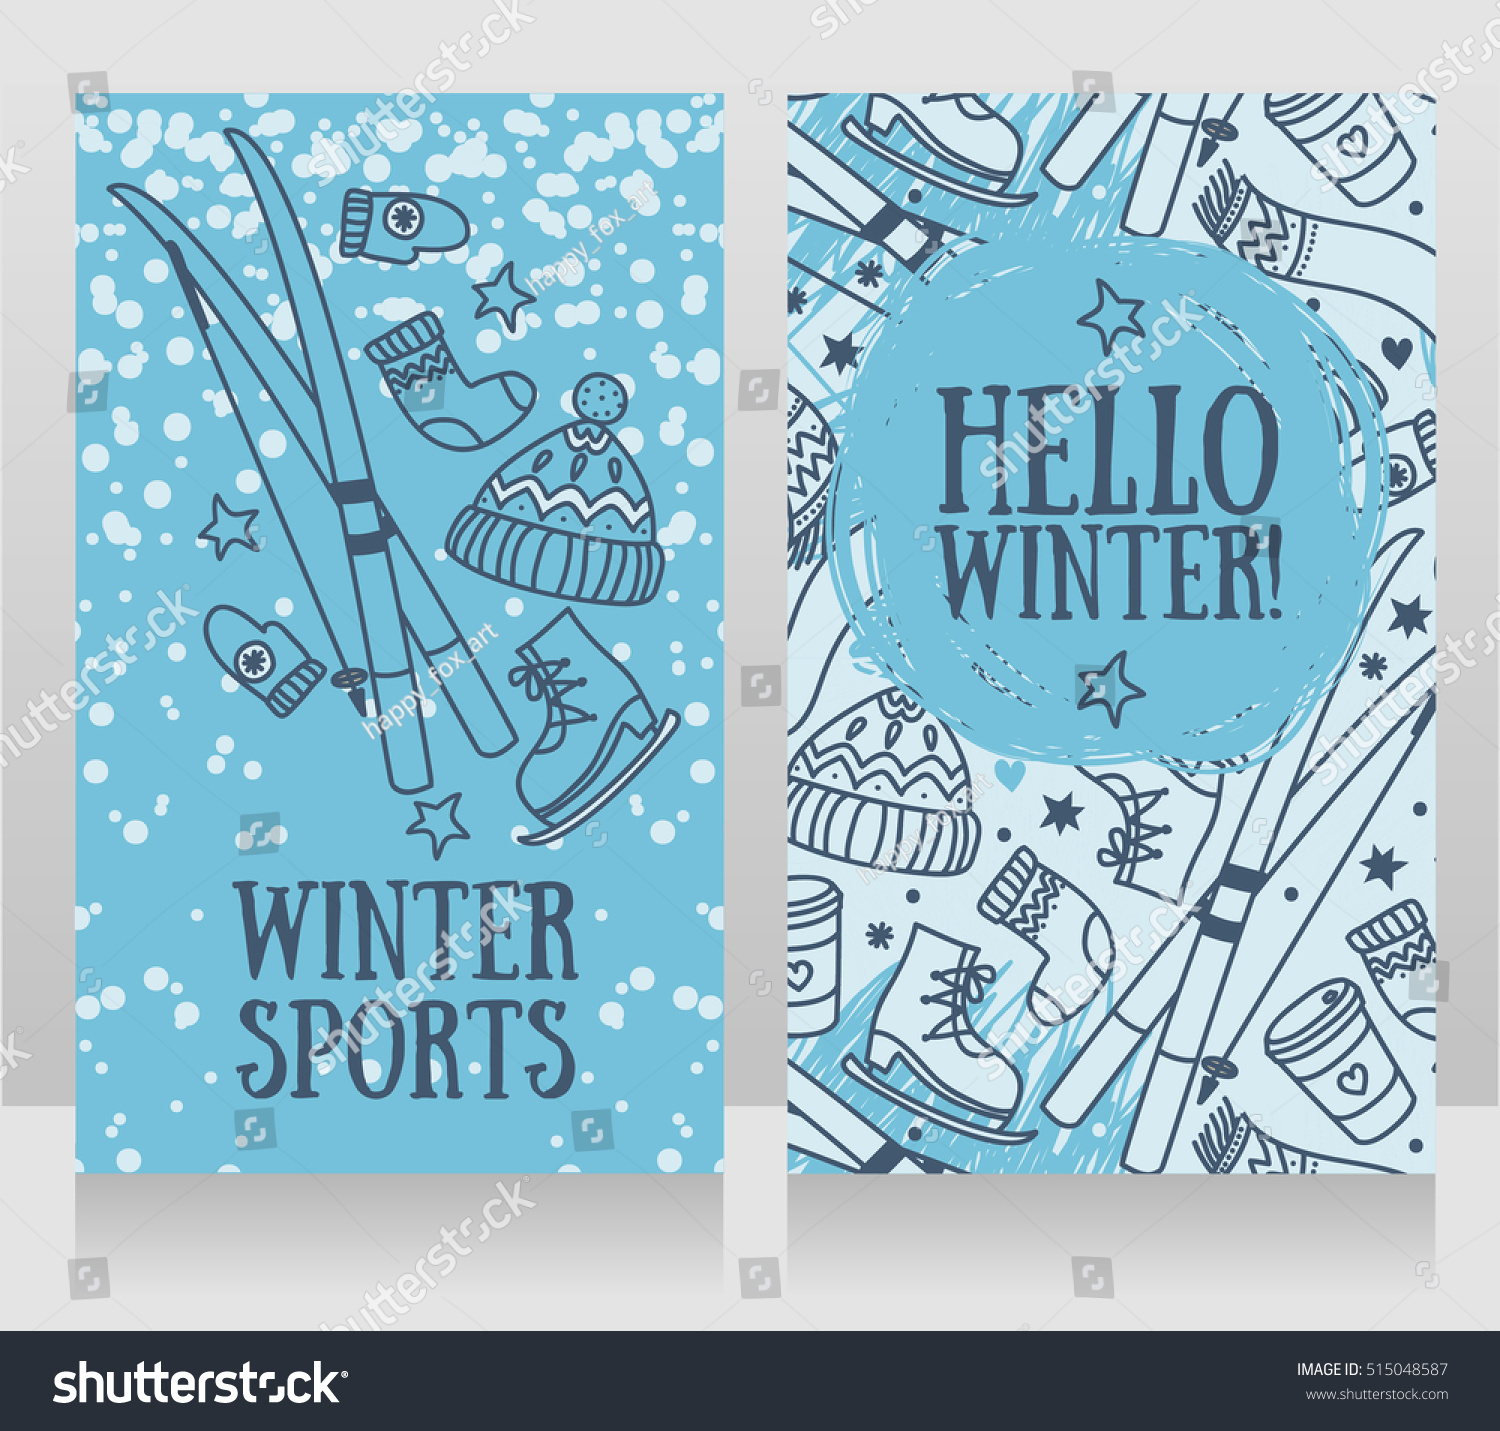 hello winter cards banners for winter games and sports vector illustration